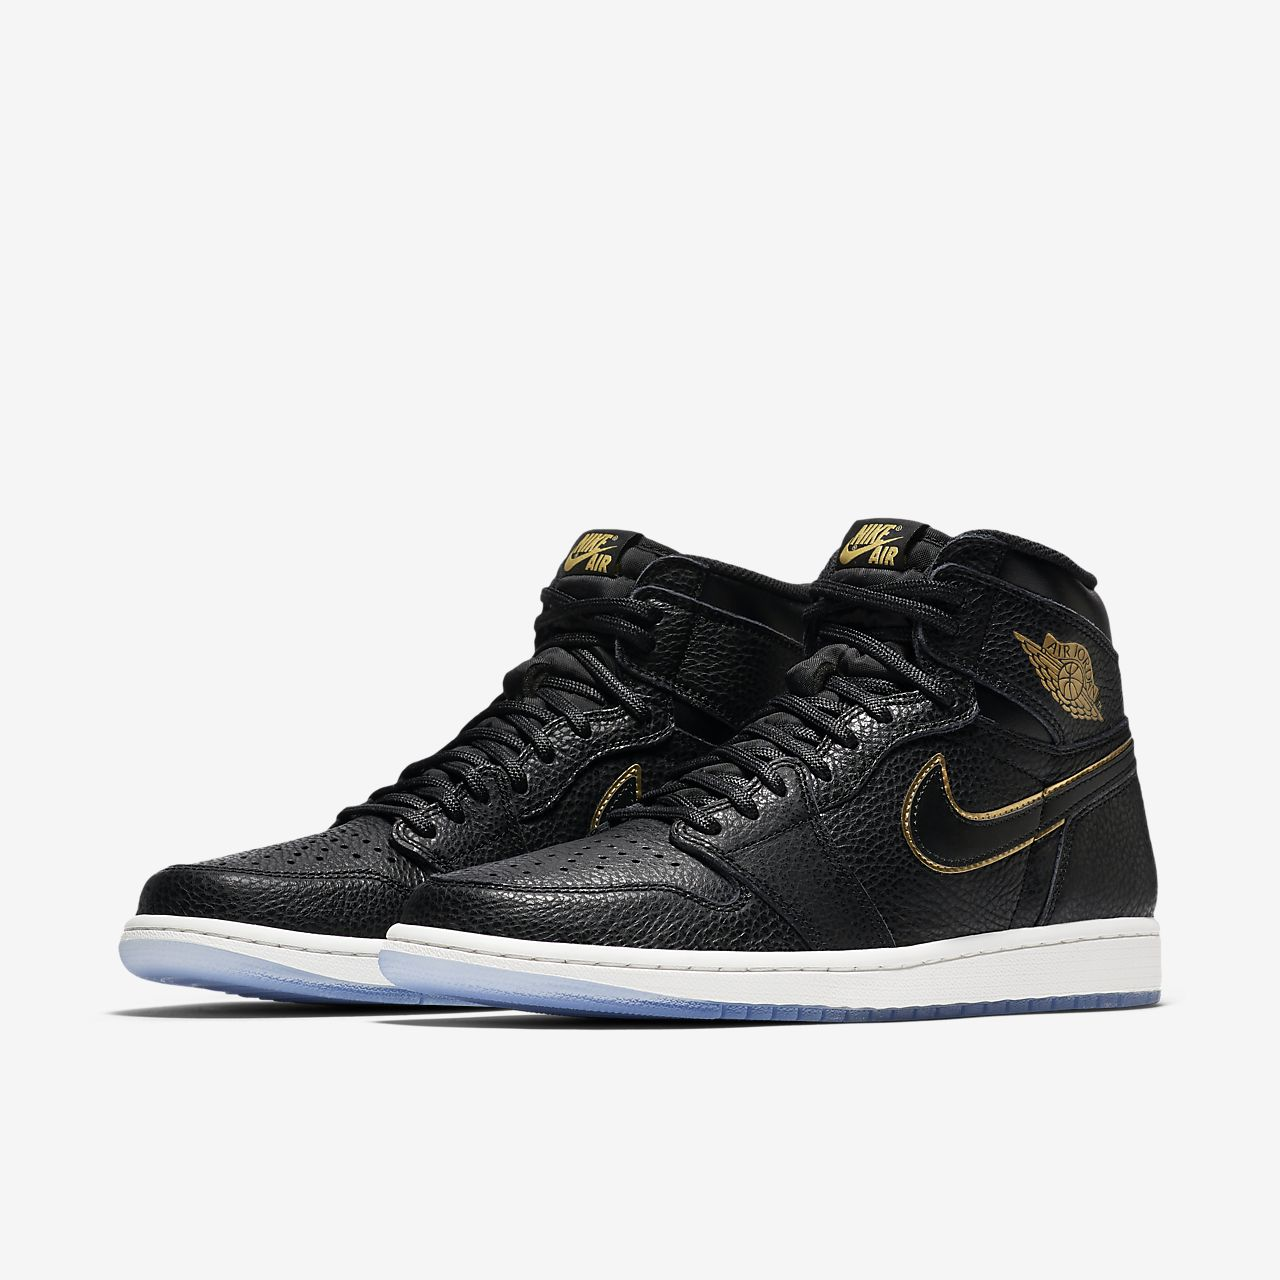 nike air jordan 1 retro nere